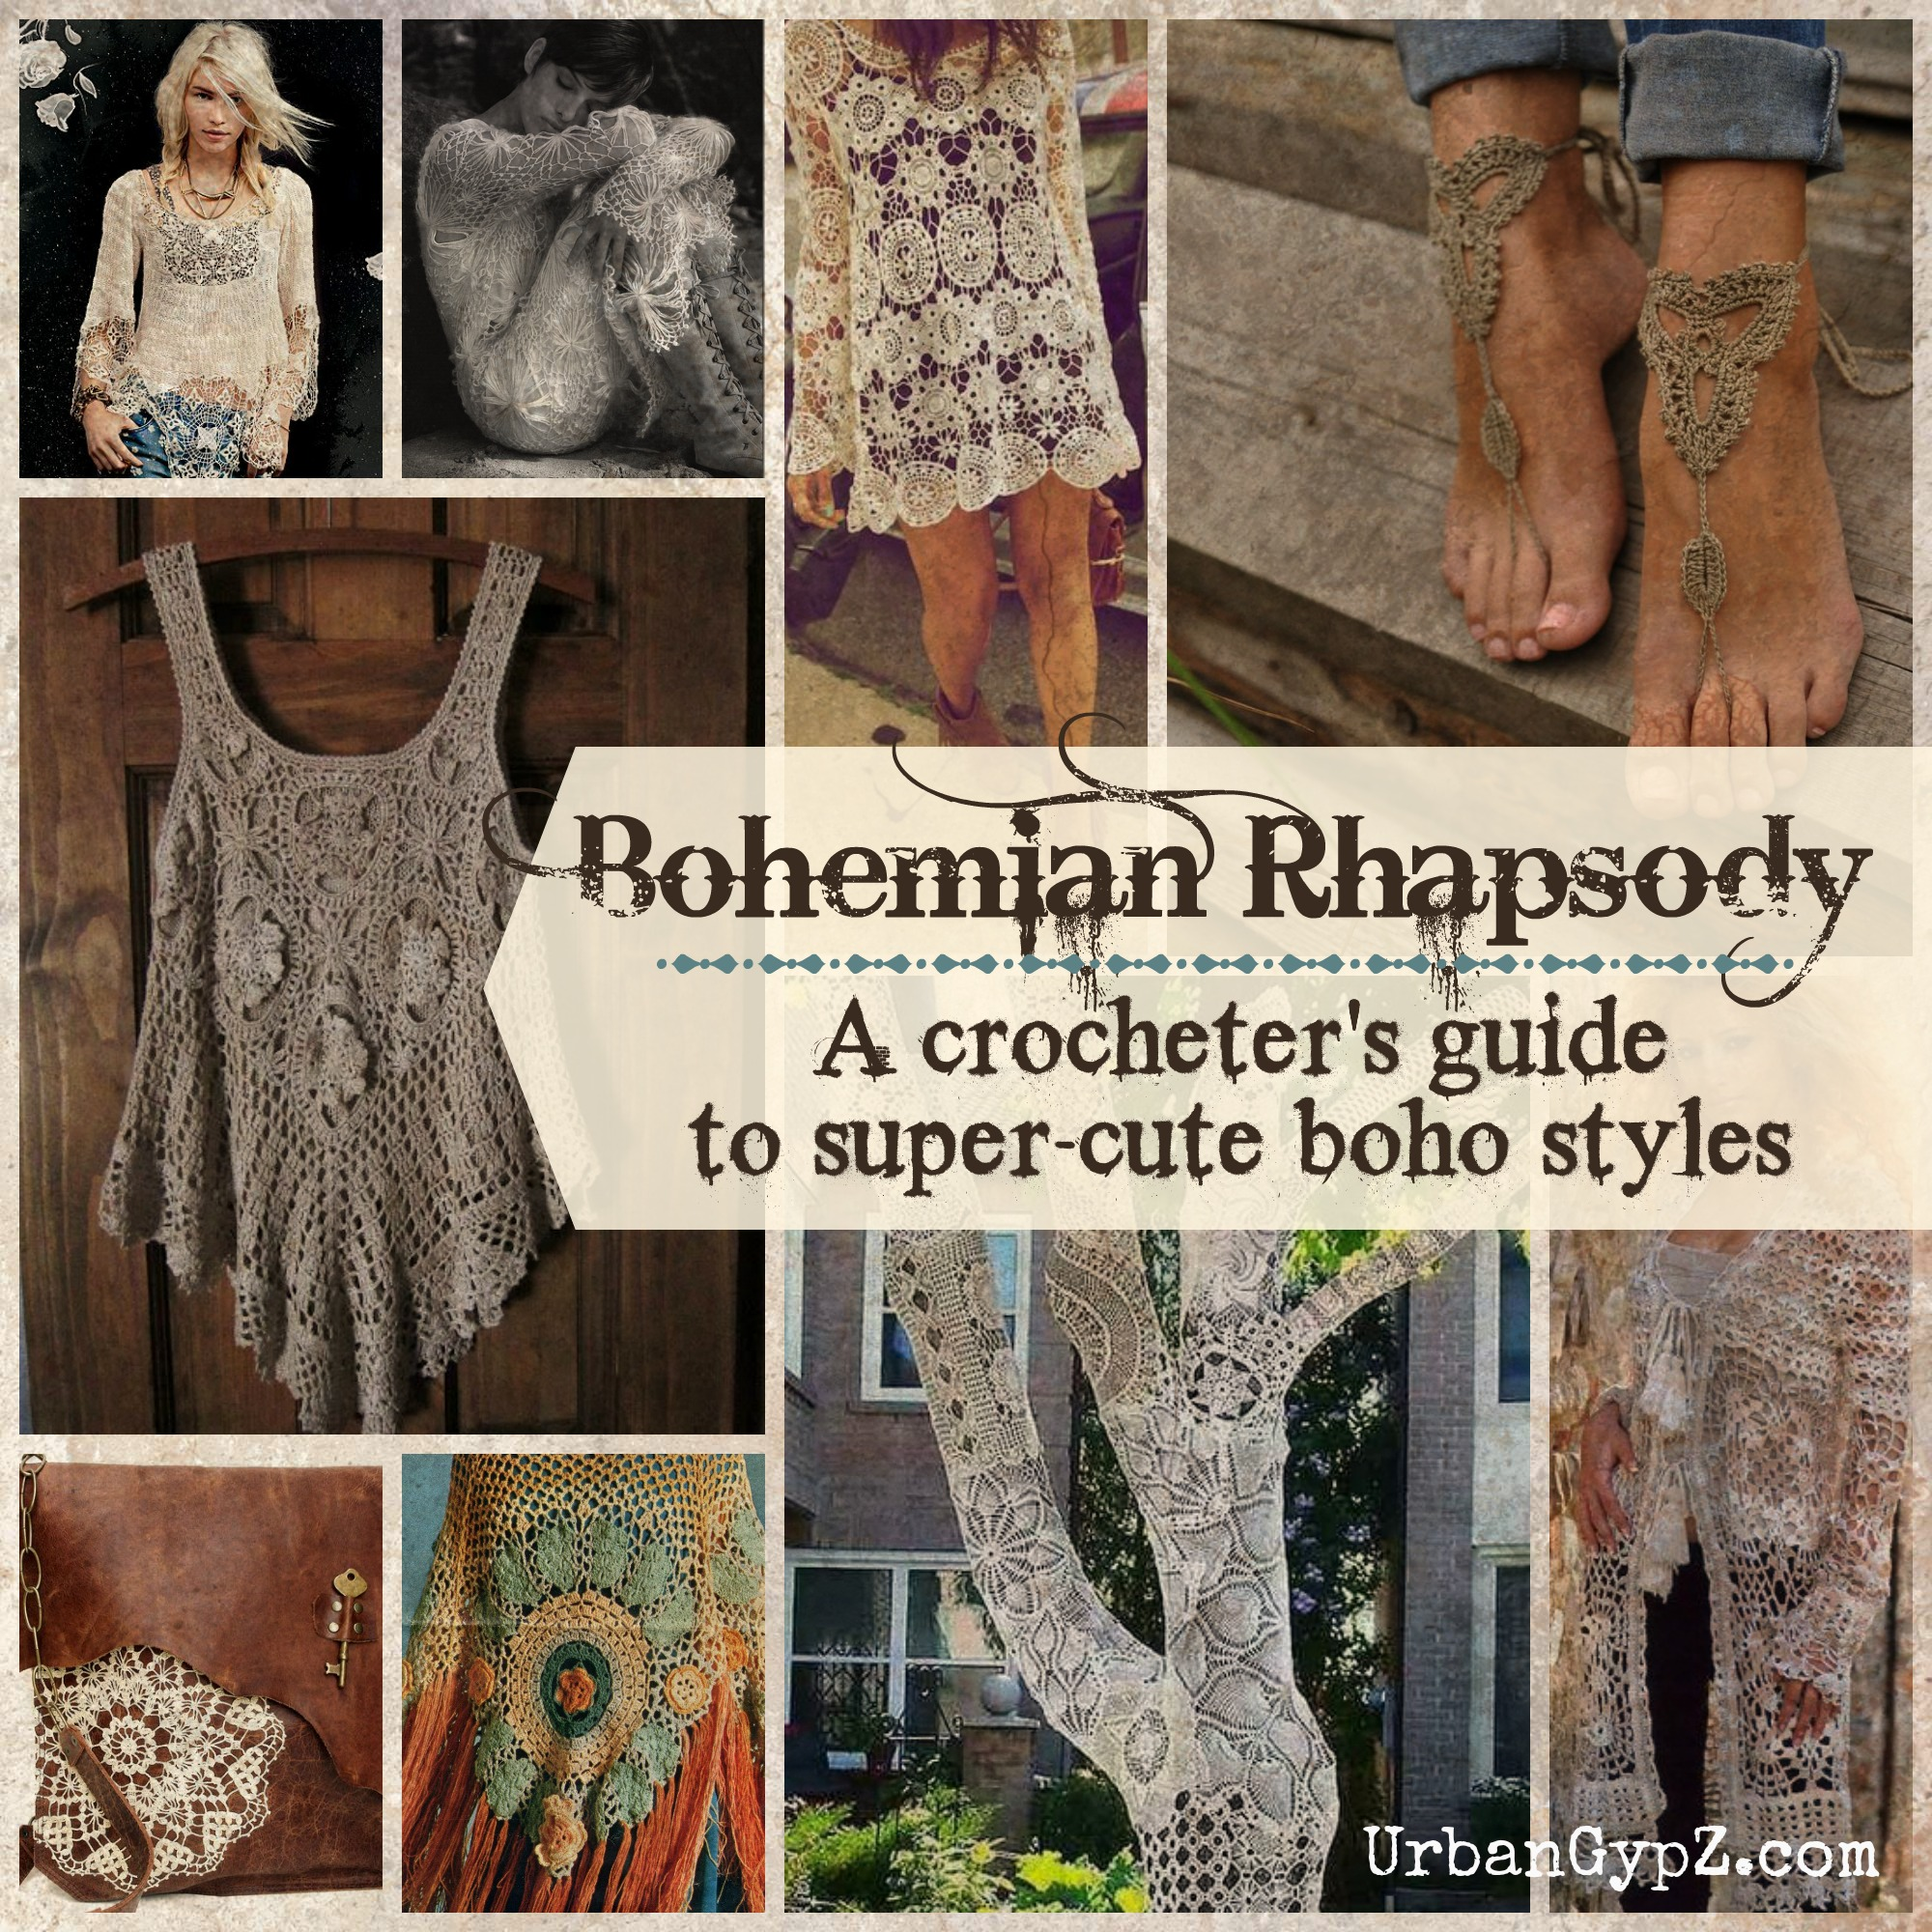 Boho Crochet Patterns : Bohemian Rhapsody: A guide to boho crochet patterns UrbanGypZ